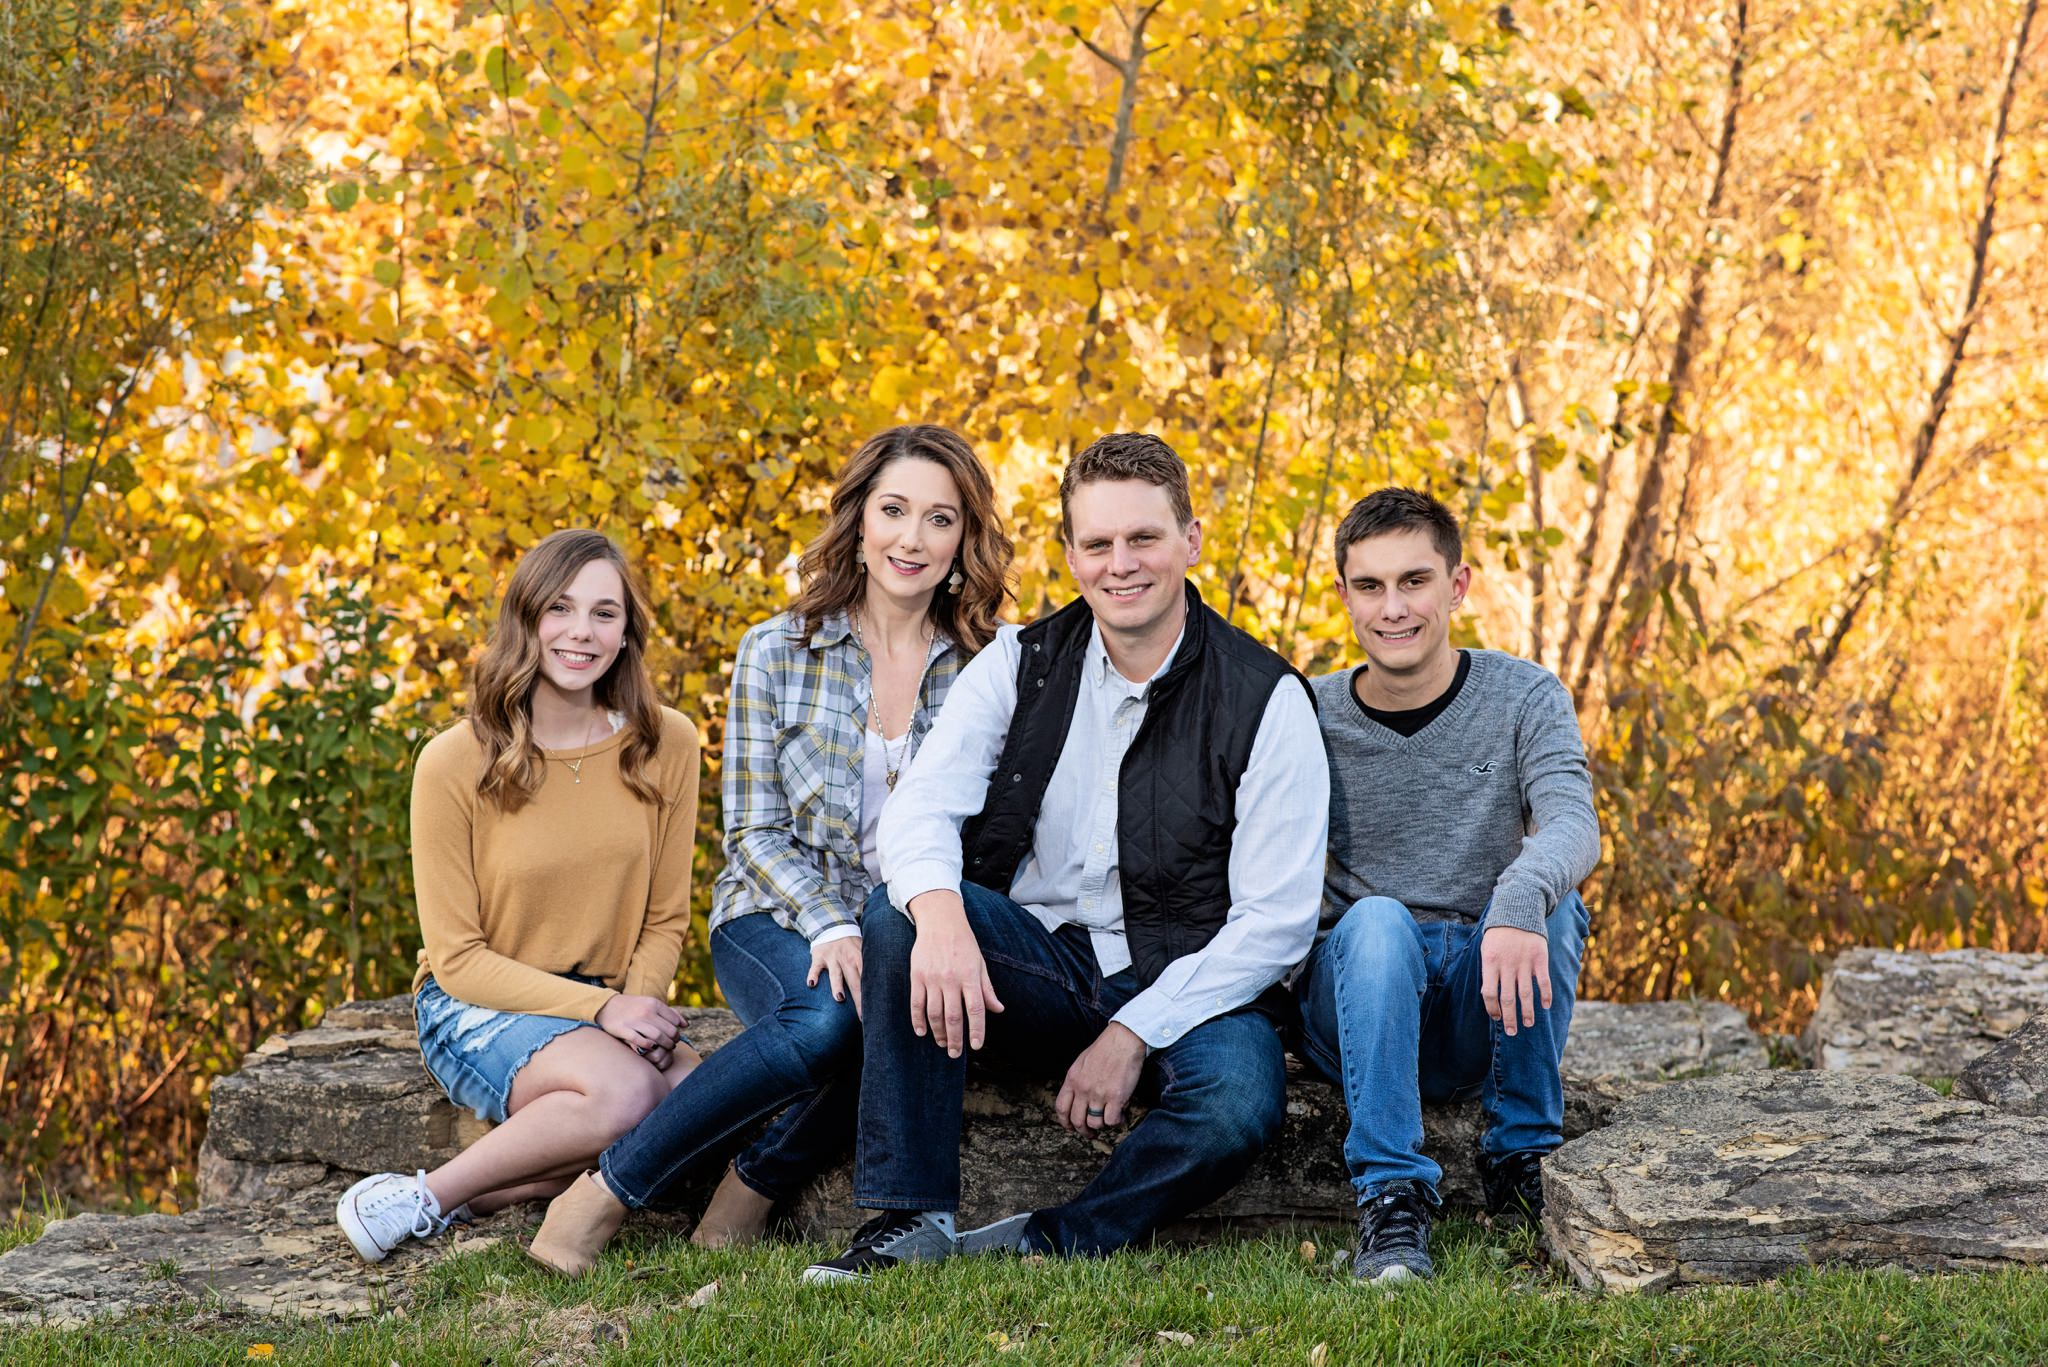 Wittwer-Family-Rotella-Photography-2018-24_WEB.jpg